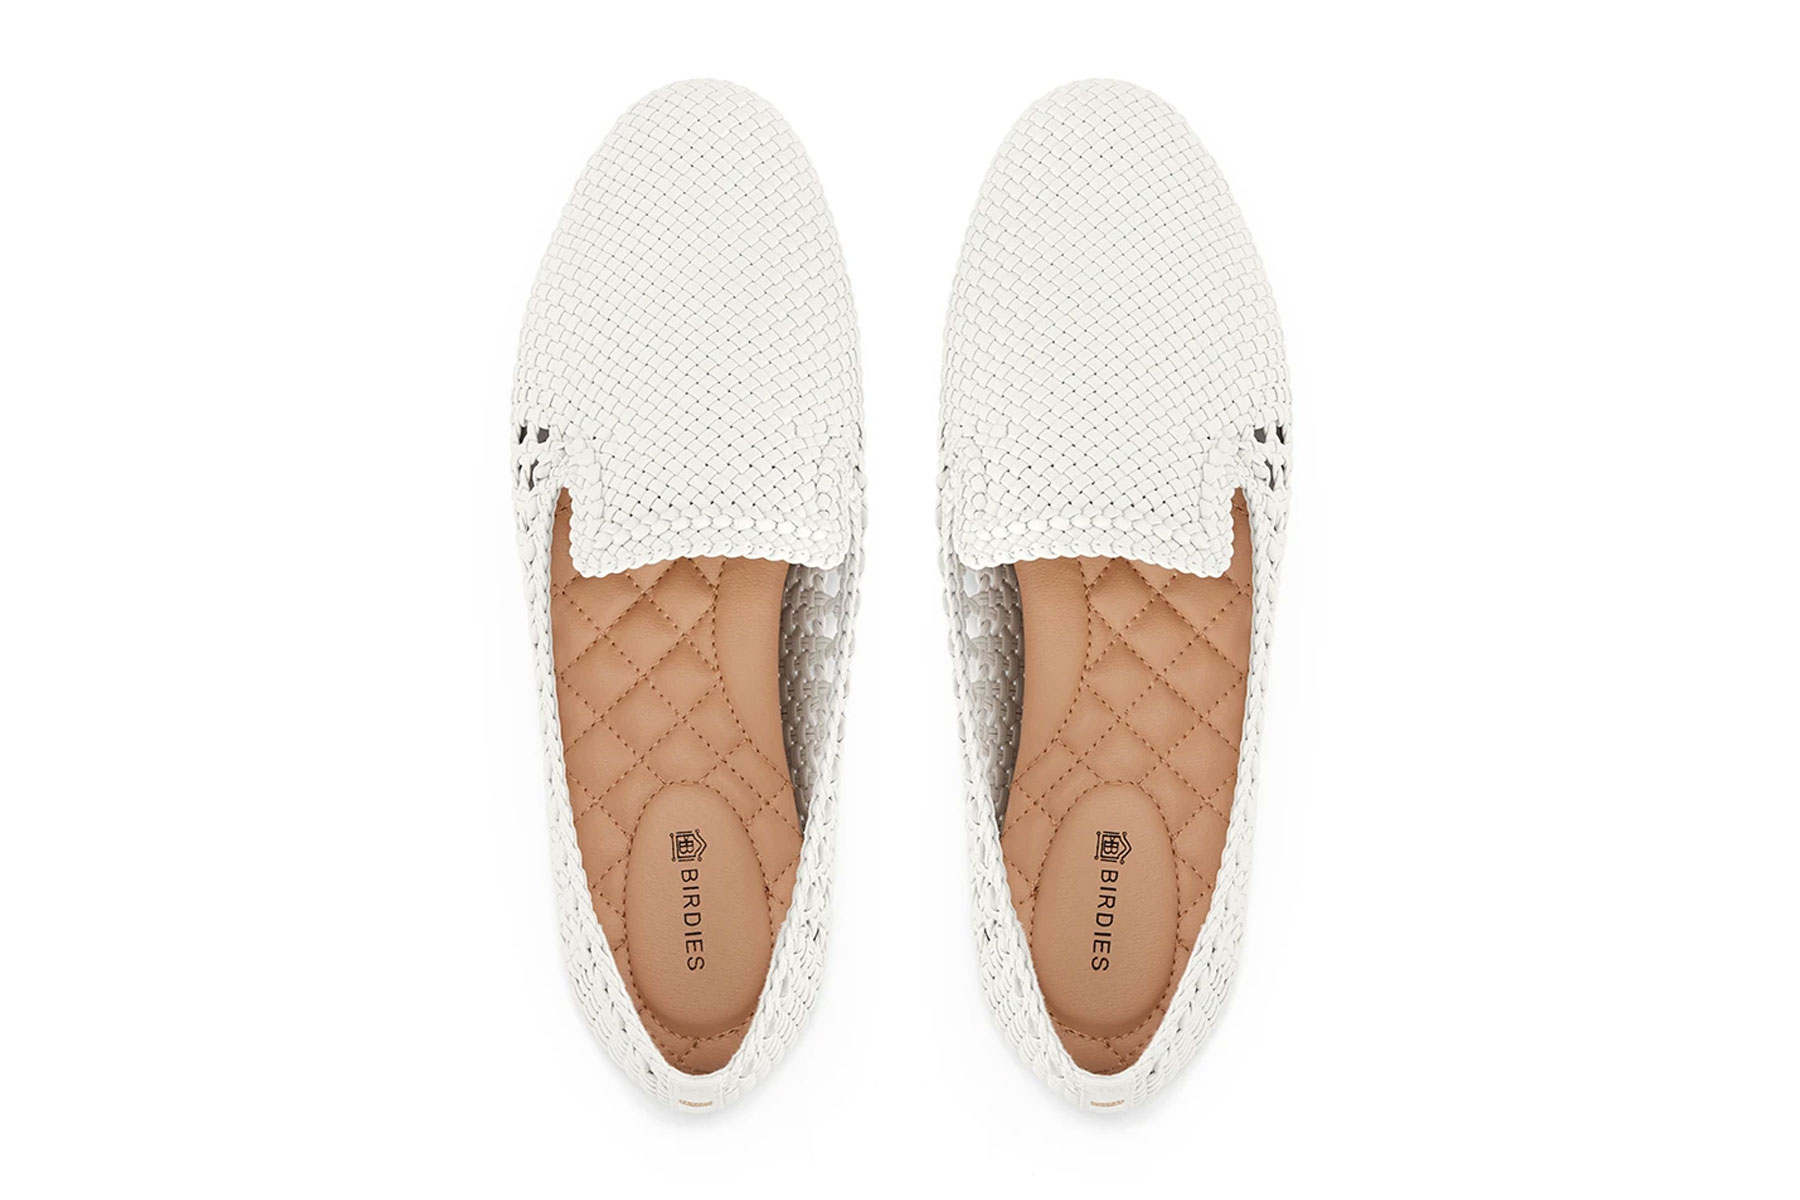 White woven slip on shoes